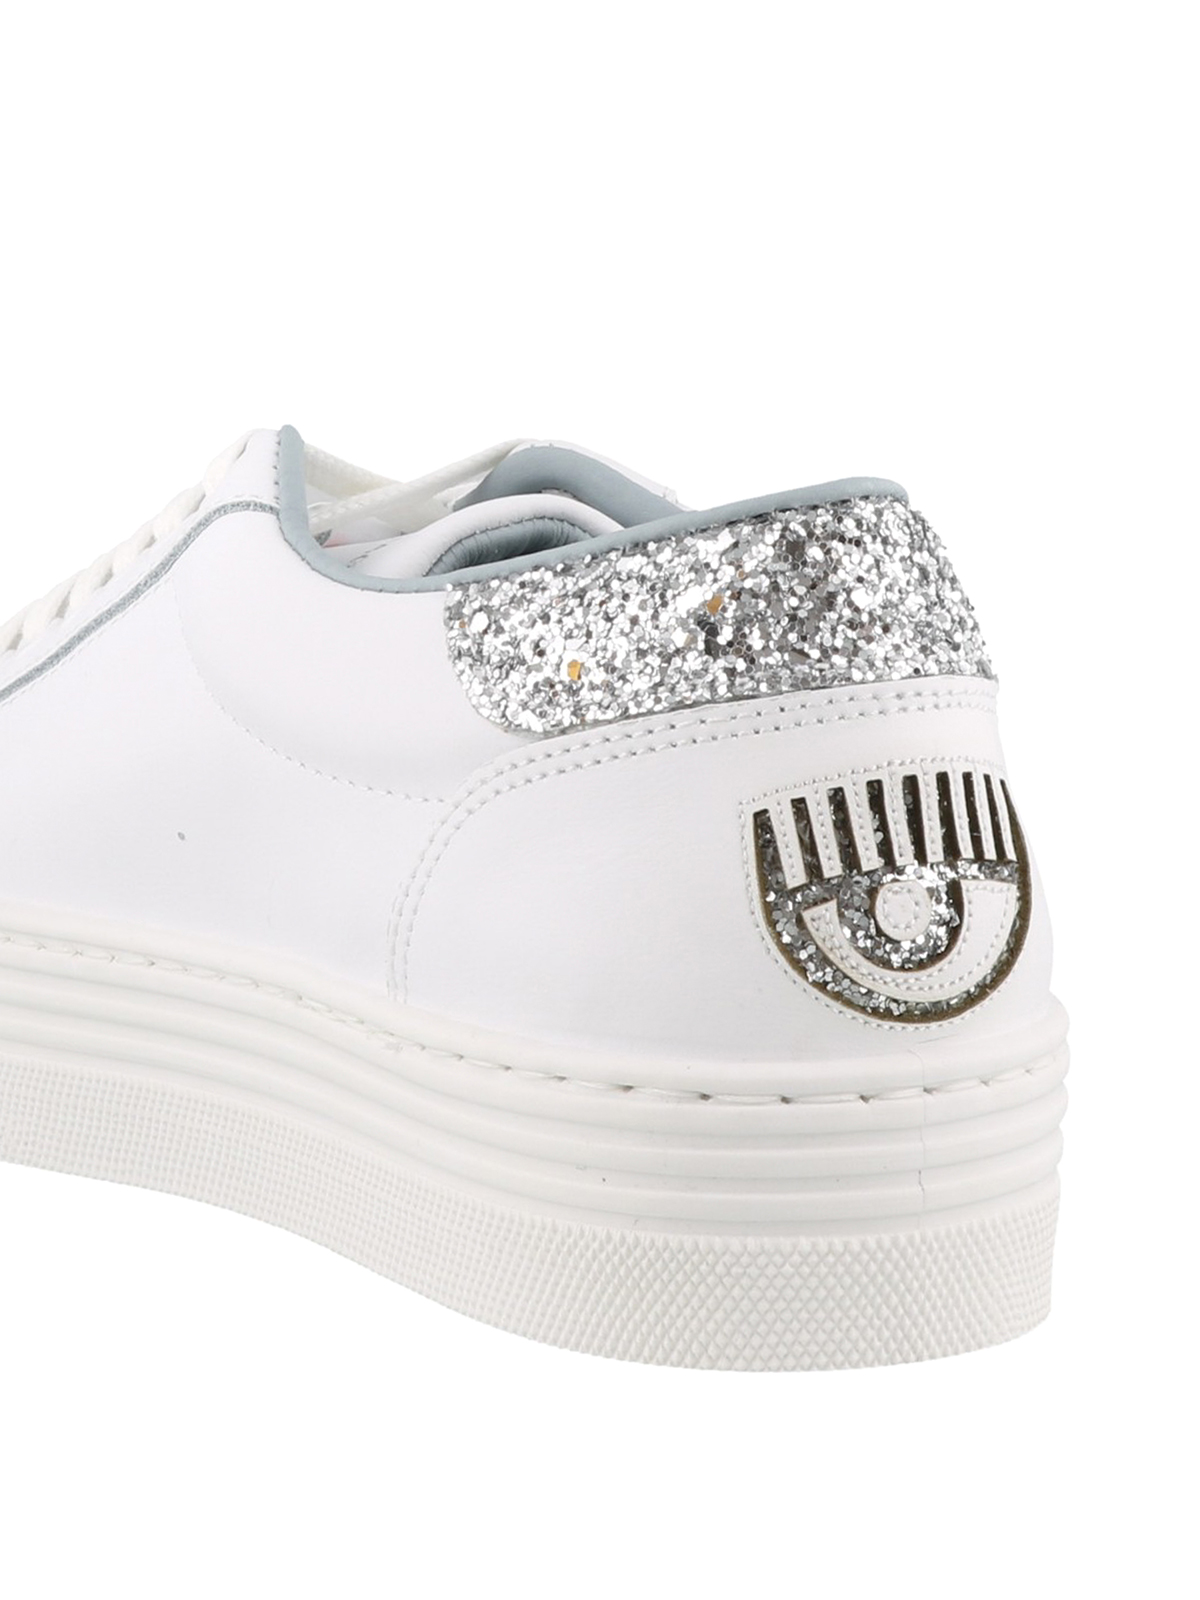 separation shoes 7551d c74fa Chiara Ferragni - Logomania white sneakers - trainers ...